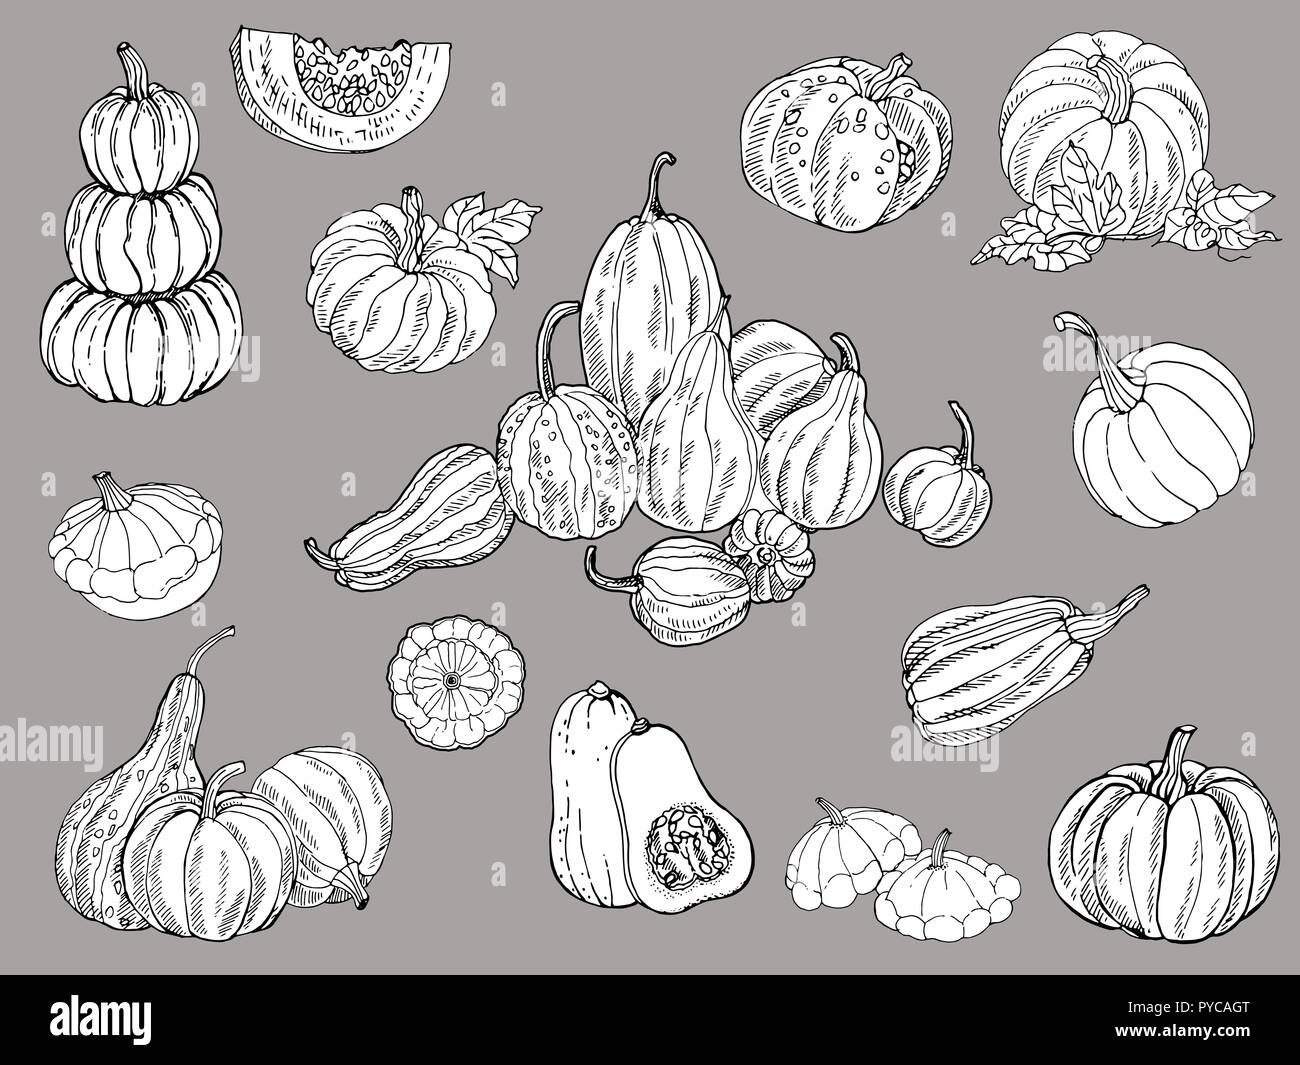 Set of hand drawn sketch style isolated pumpkins. Vector illustration. - Stock Vector